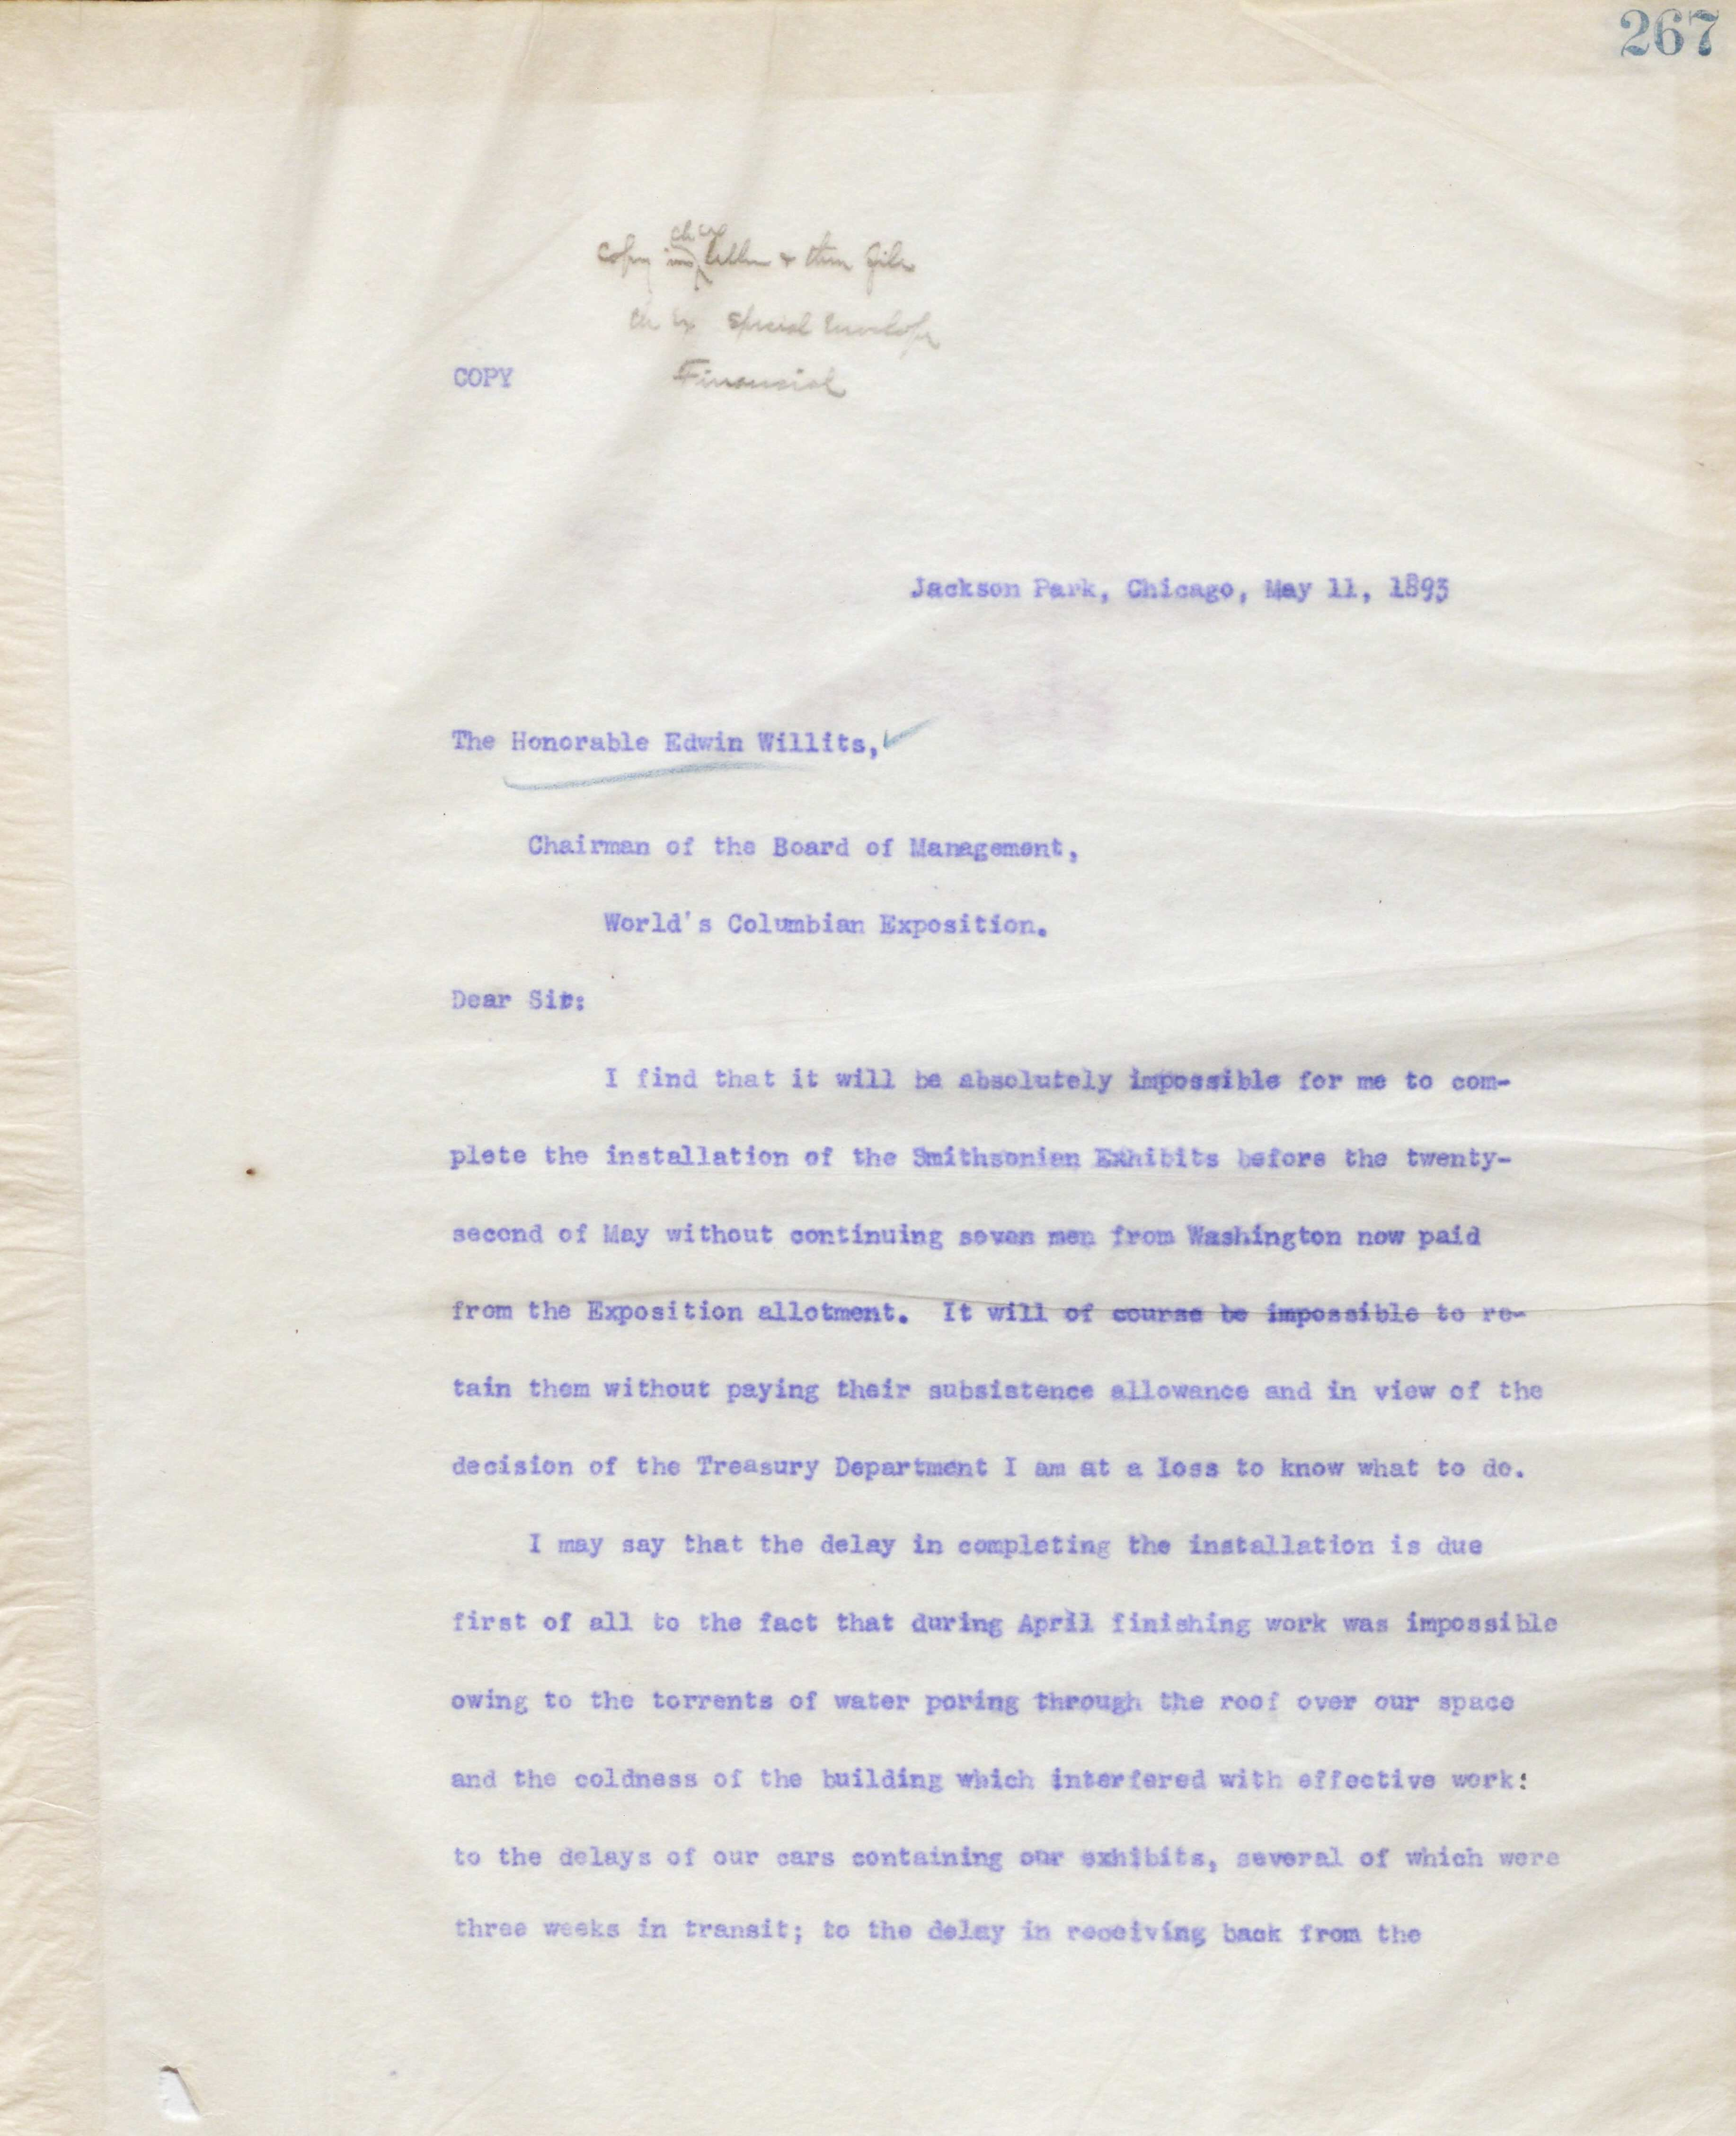 Letter from R. Edward Earll explaining delays in exhibit installation.